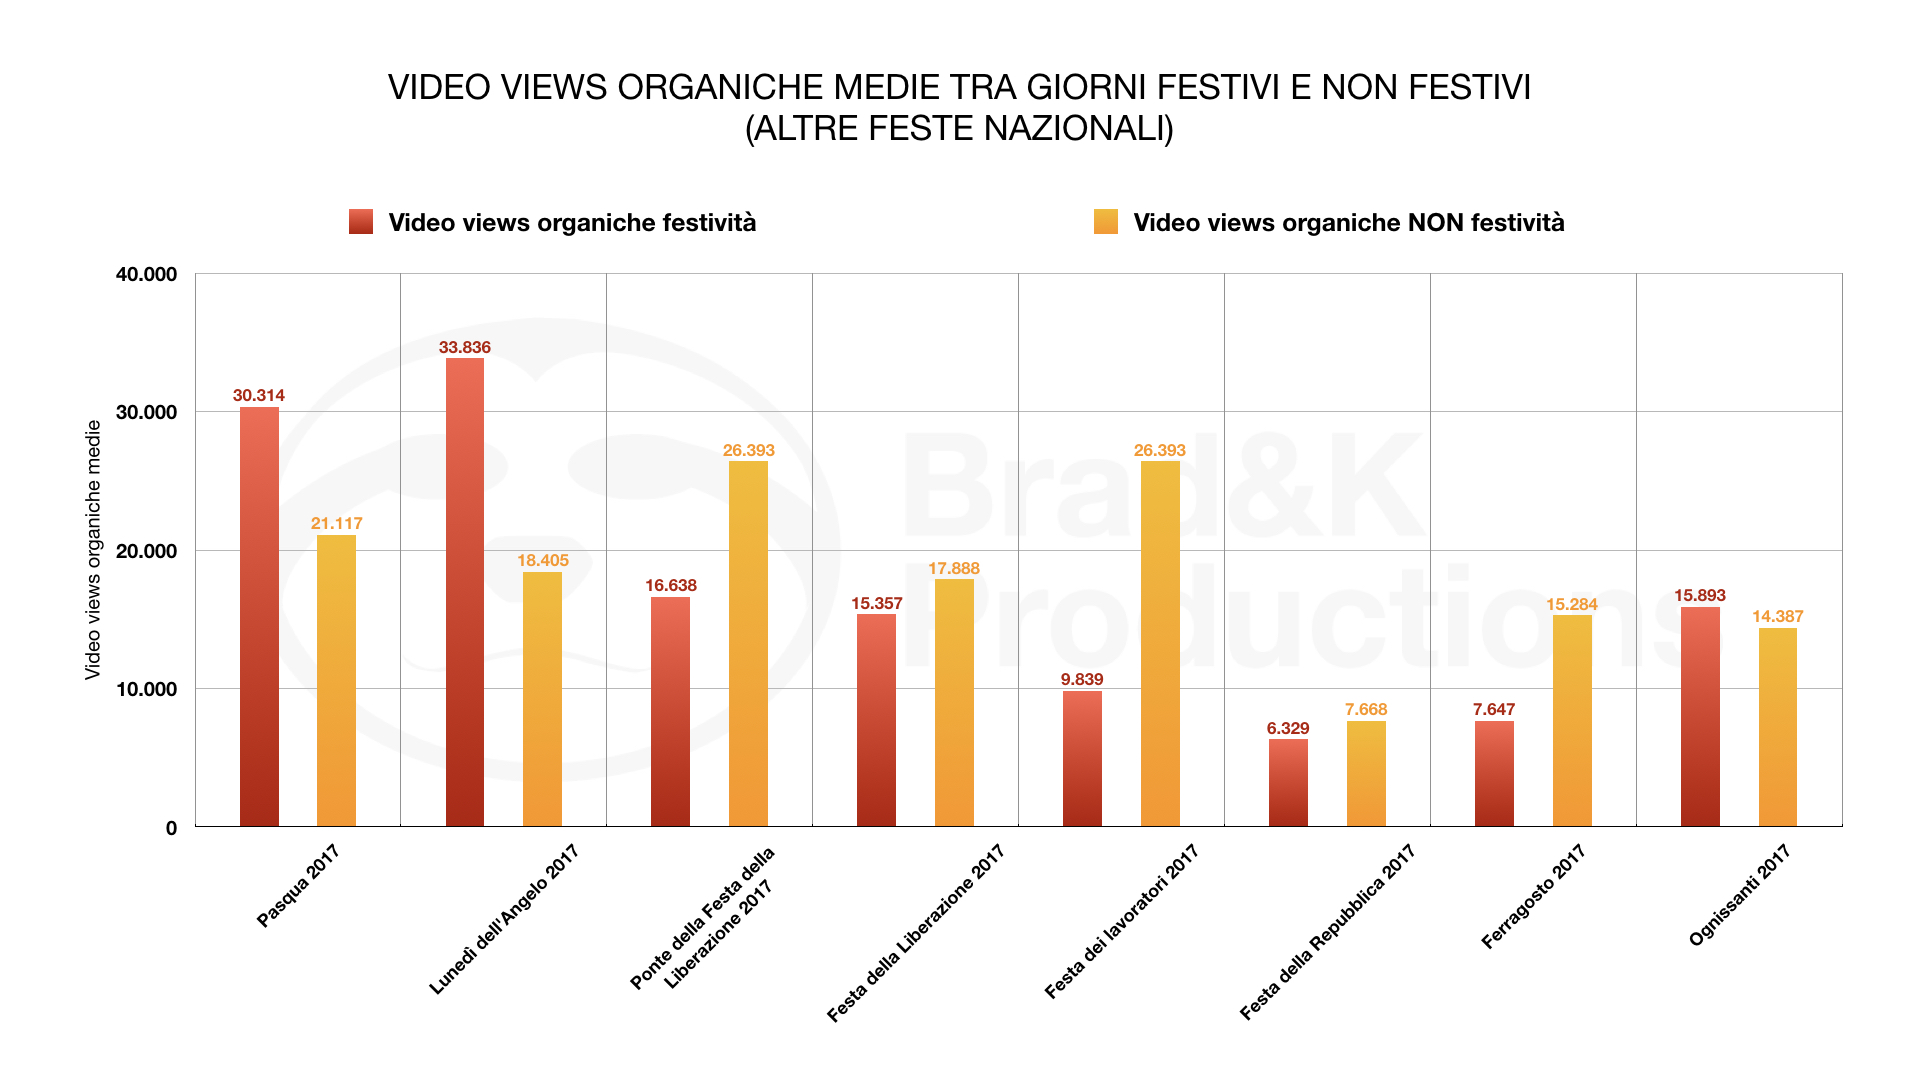 VIDEO VIEWS ORGANIC MEDIUM BETWEEN PUBLIC HOLIDAYS AND PUBLIC HOLIDAYS(OTHER HOLIDAYS)